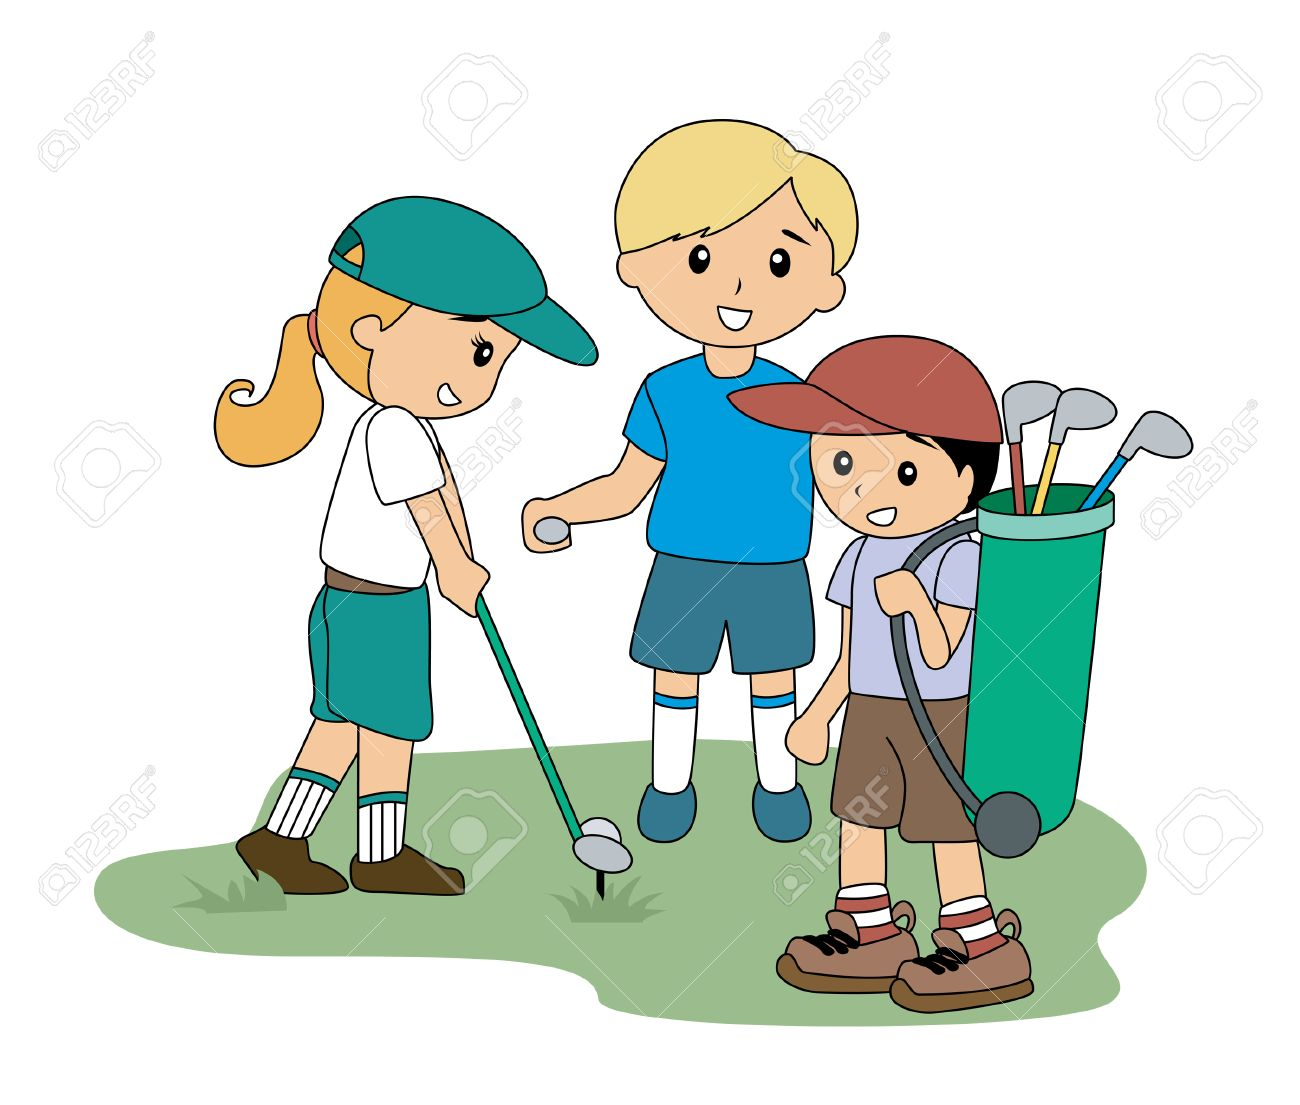 Children playing Golf.